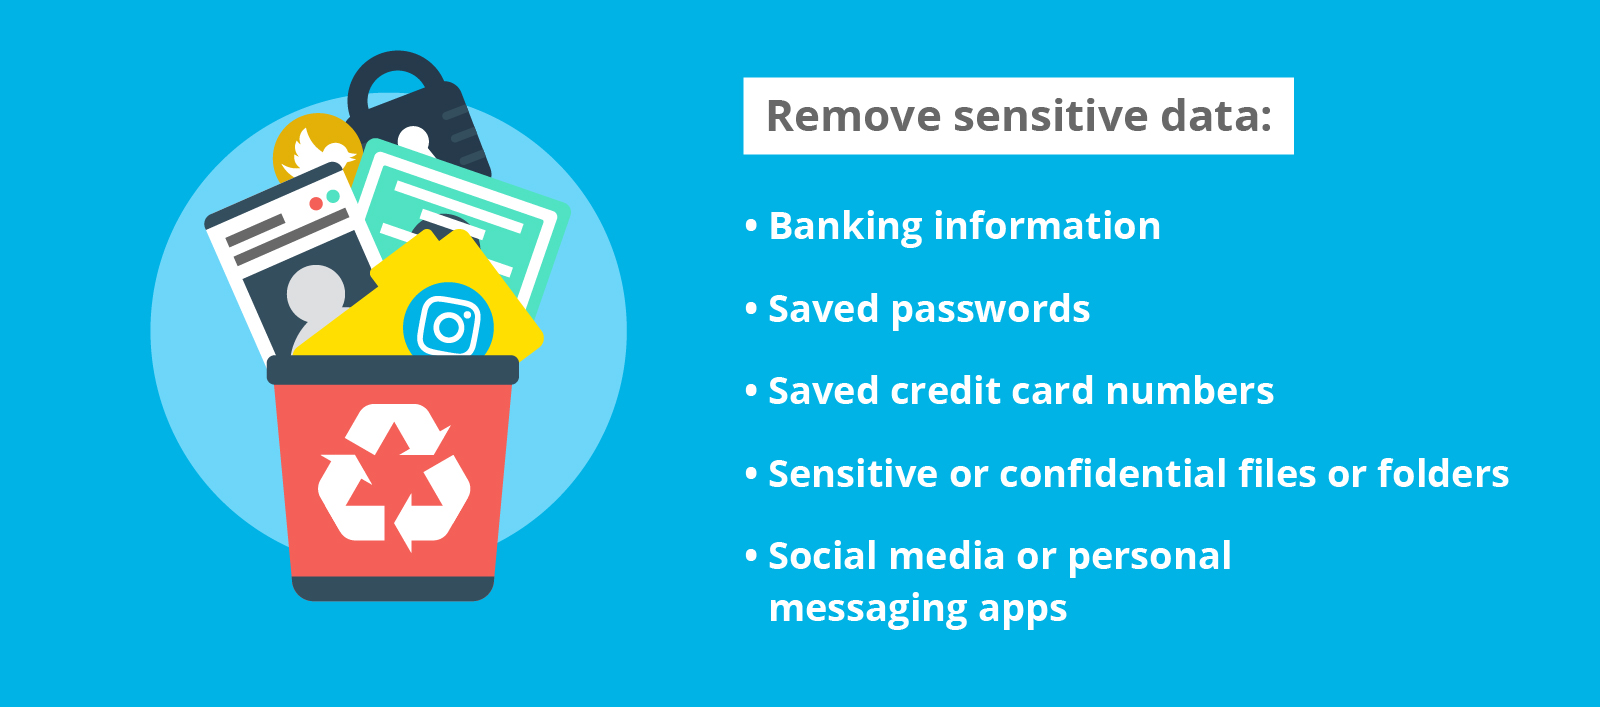 A list of sensitive data to remove from your devices before traveling